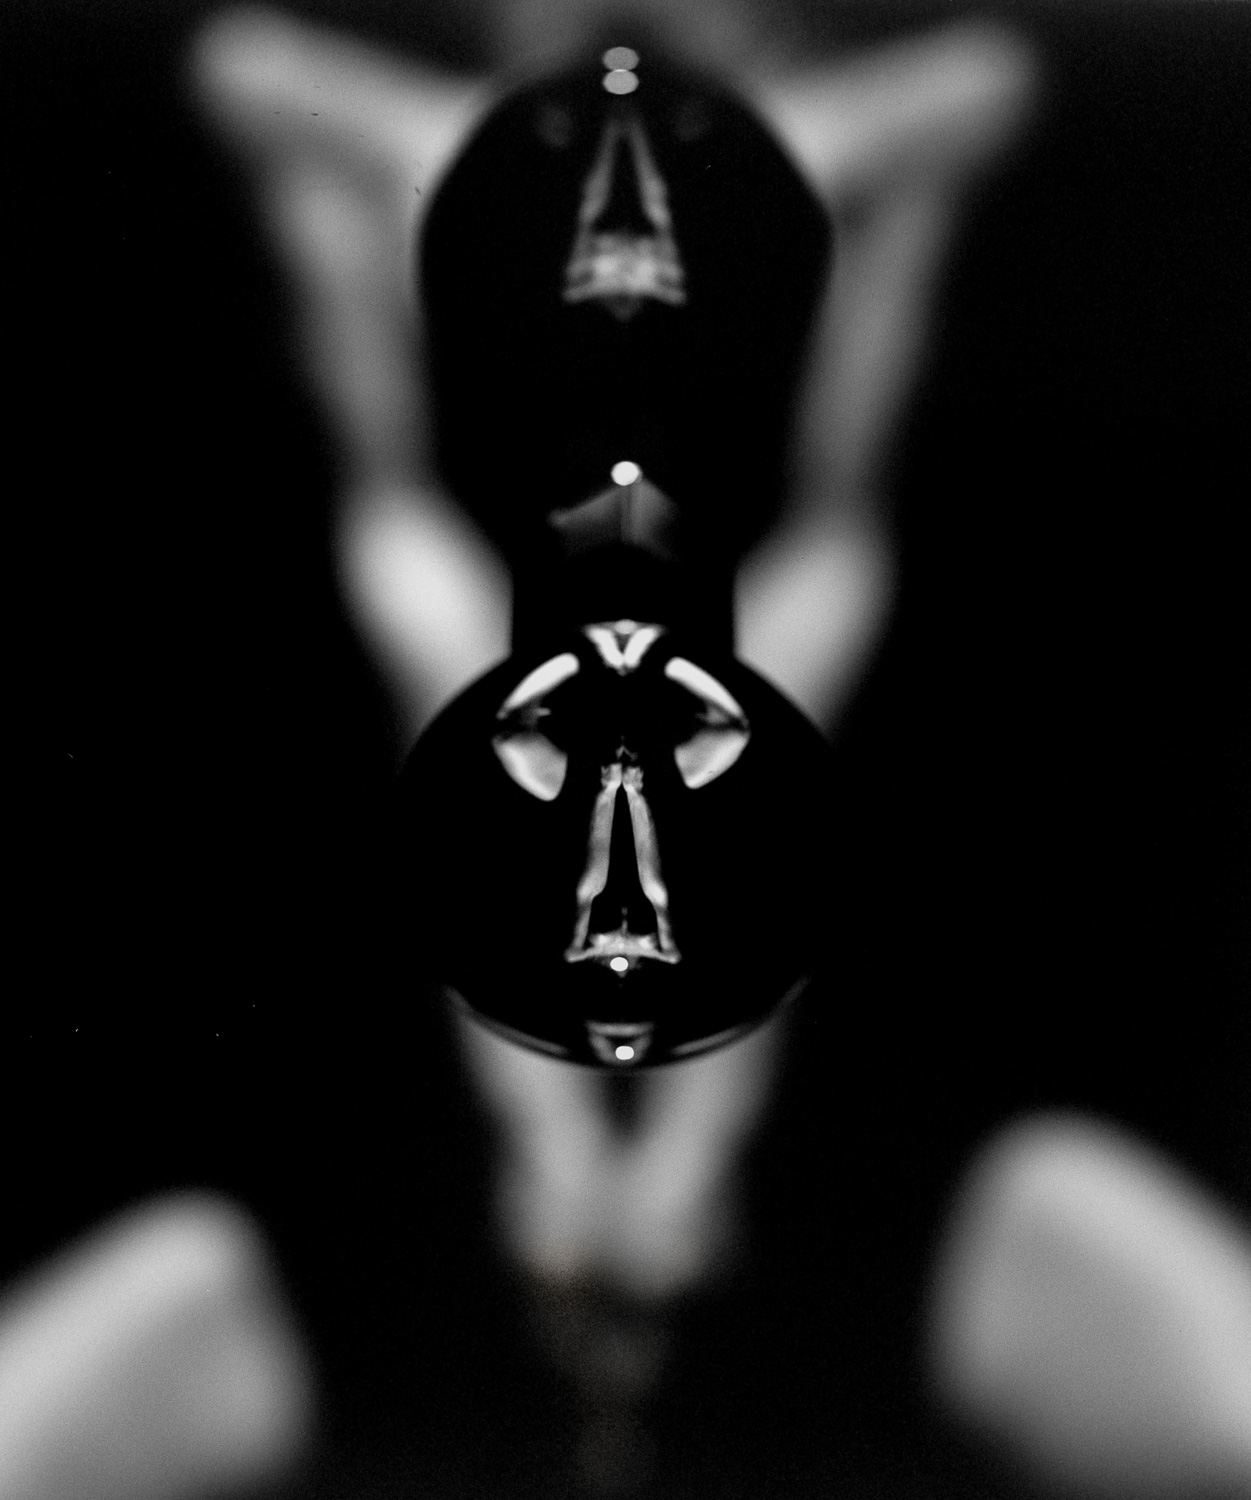 Black and white nudes, fine art photography, nude art prints, bw fine art, refraction, reflection, crystal ball, bubbles, breasts, abstract, art nudes